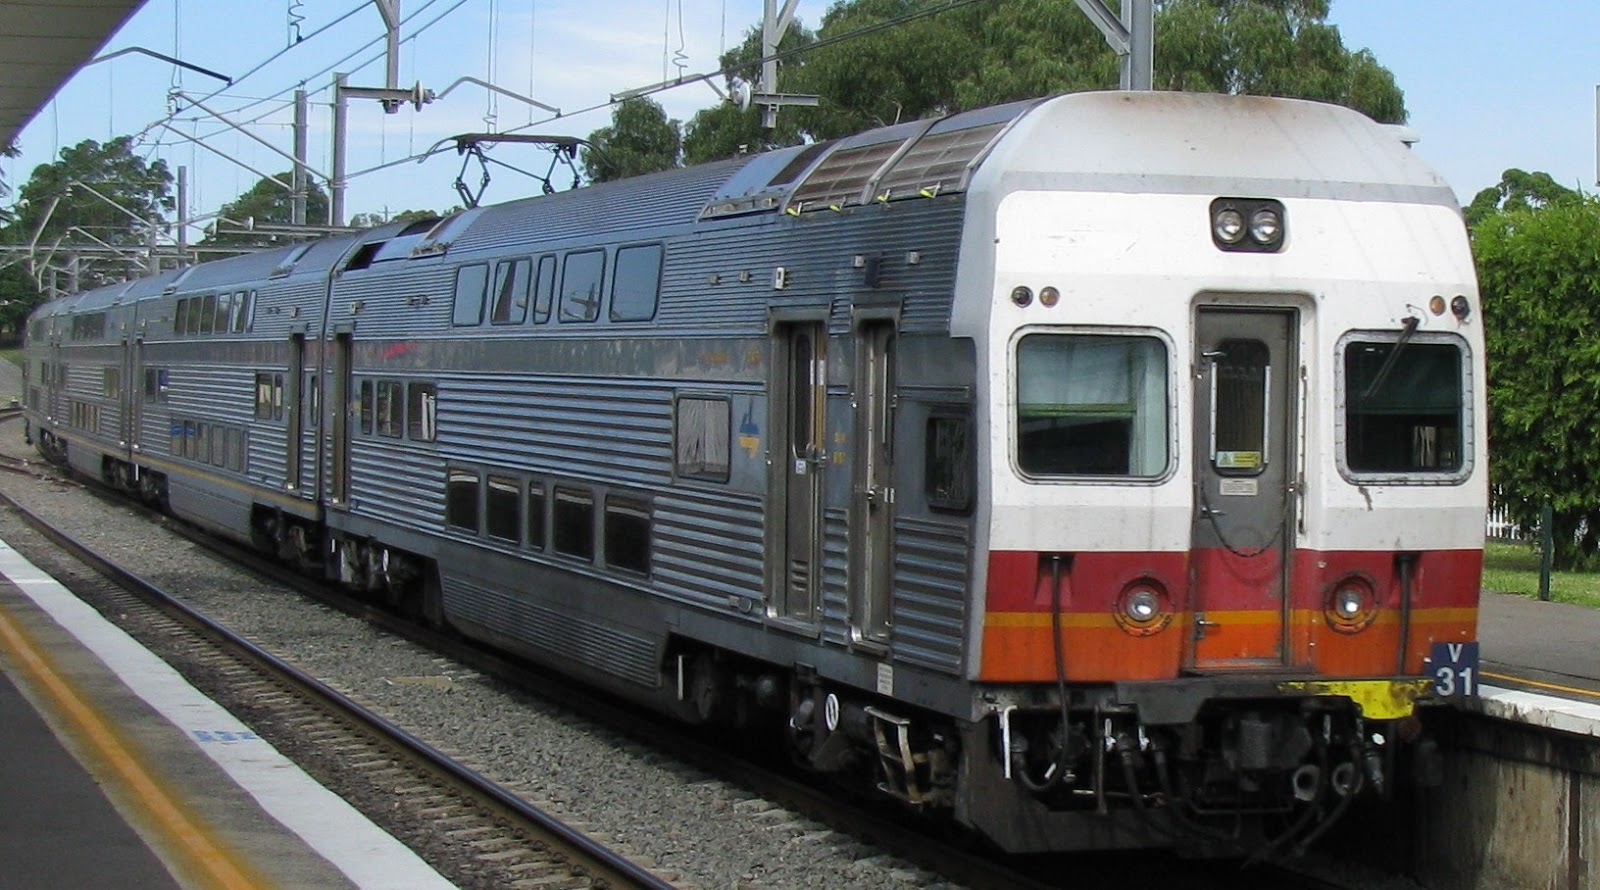 Rusted2therails Cityrail Sydney Trains Passenger Trains